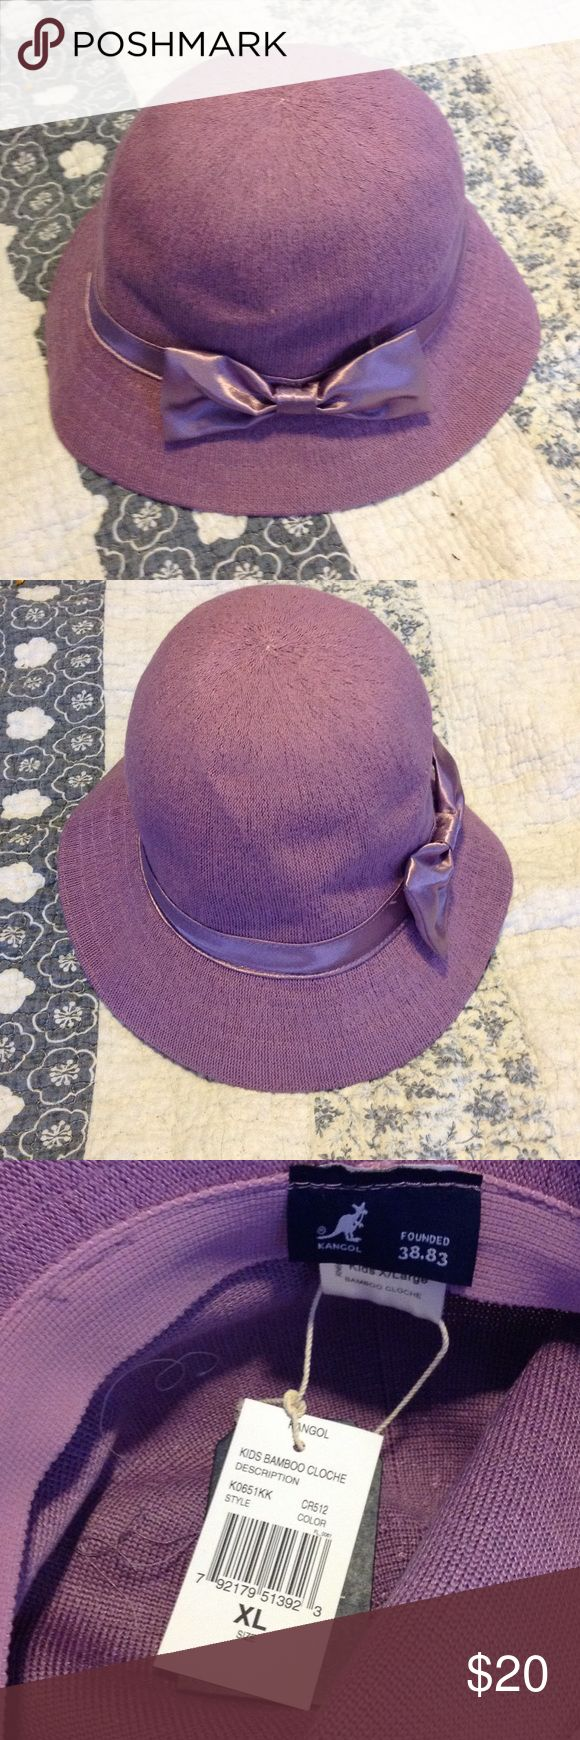 NWT Kangol Kids Bamboo Cloche Hat Sz XL Beautiful lavender cloche girls' hat from Kangol.   Breathable in bamboo!  XL fits 8-10 yrs (see last pic).  Stored in my smoke-free home. Kangol Accessories Hats